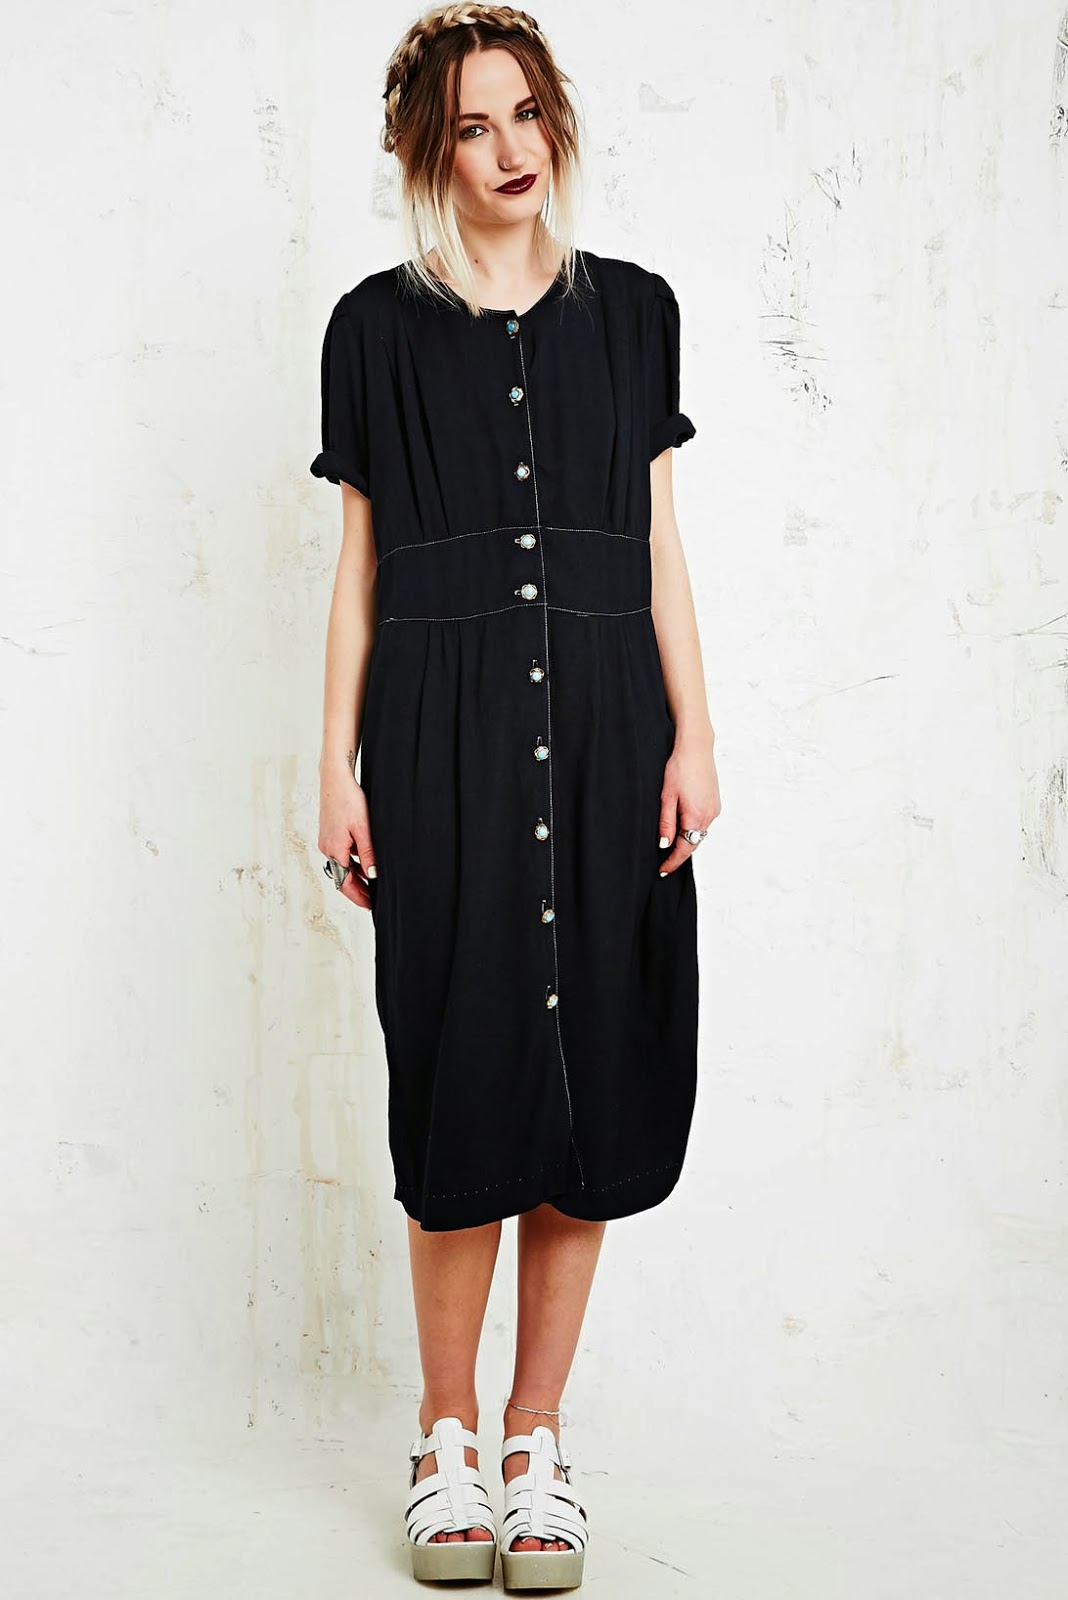 http://www.urbanoutfitters.de/vintage-renewal-rayon-dress-in-black/invt/5416439190026